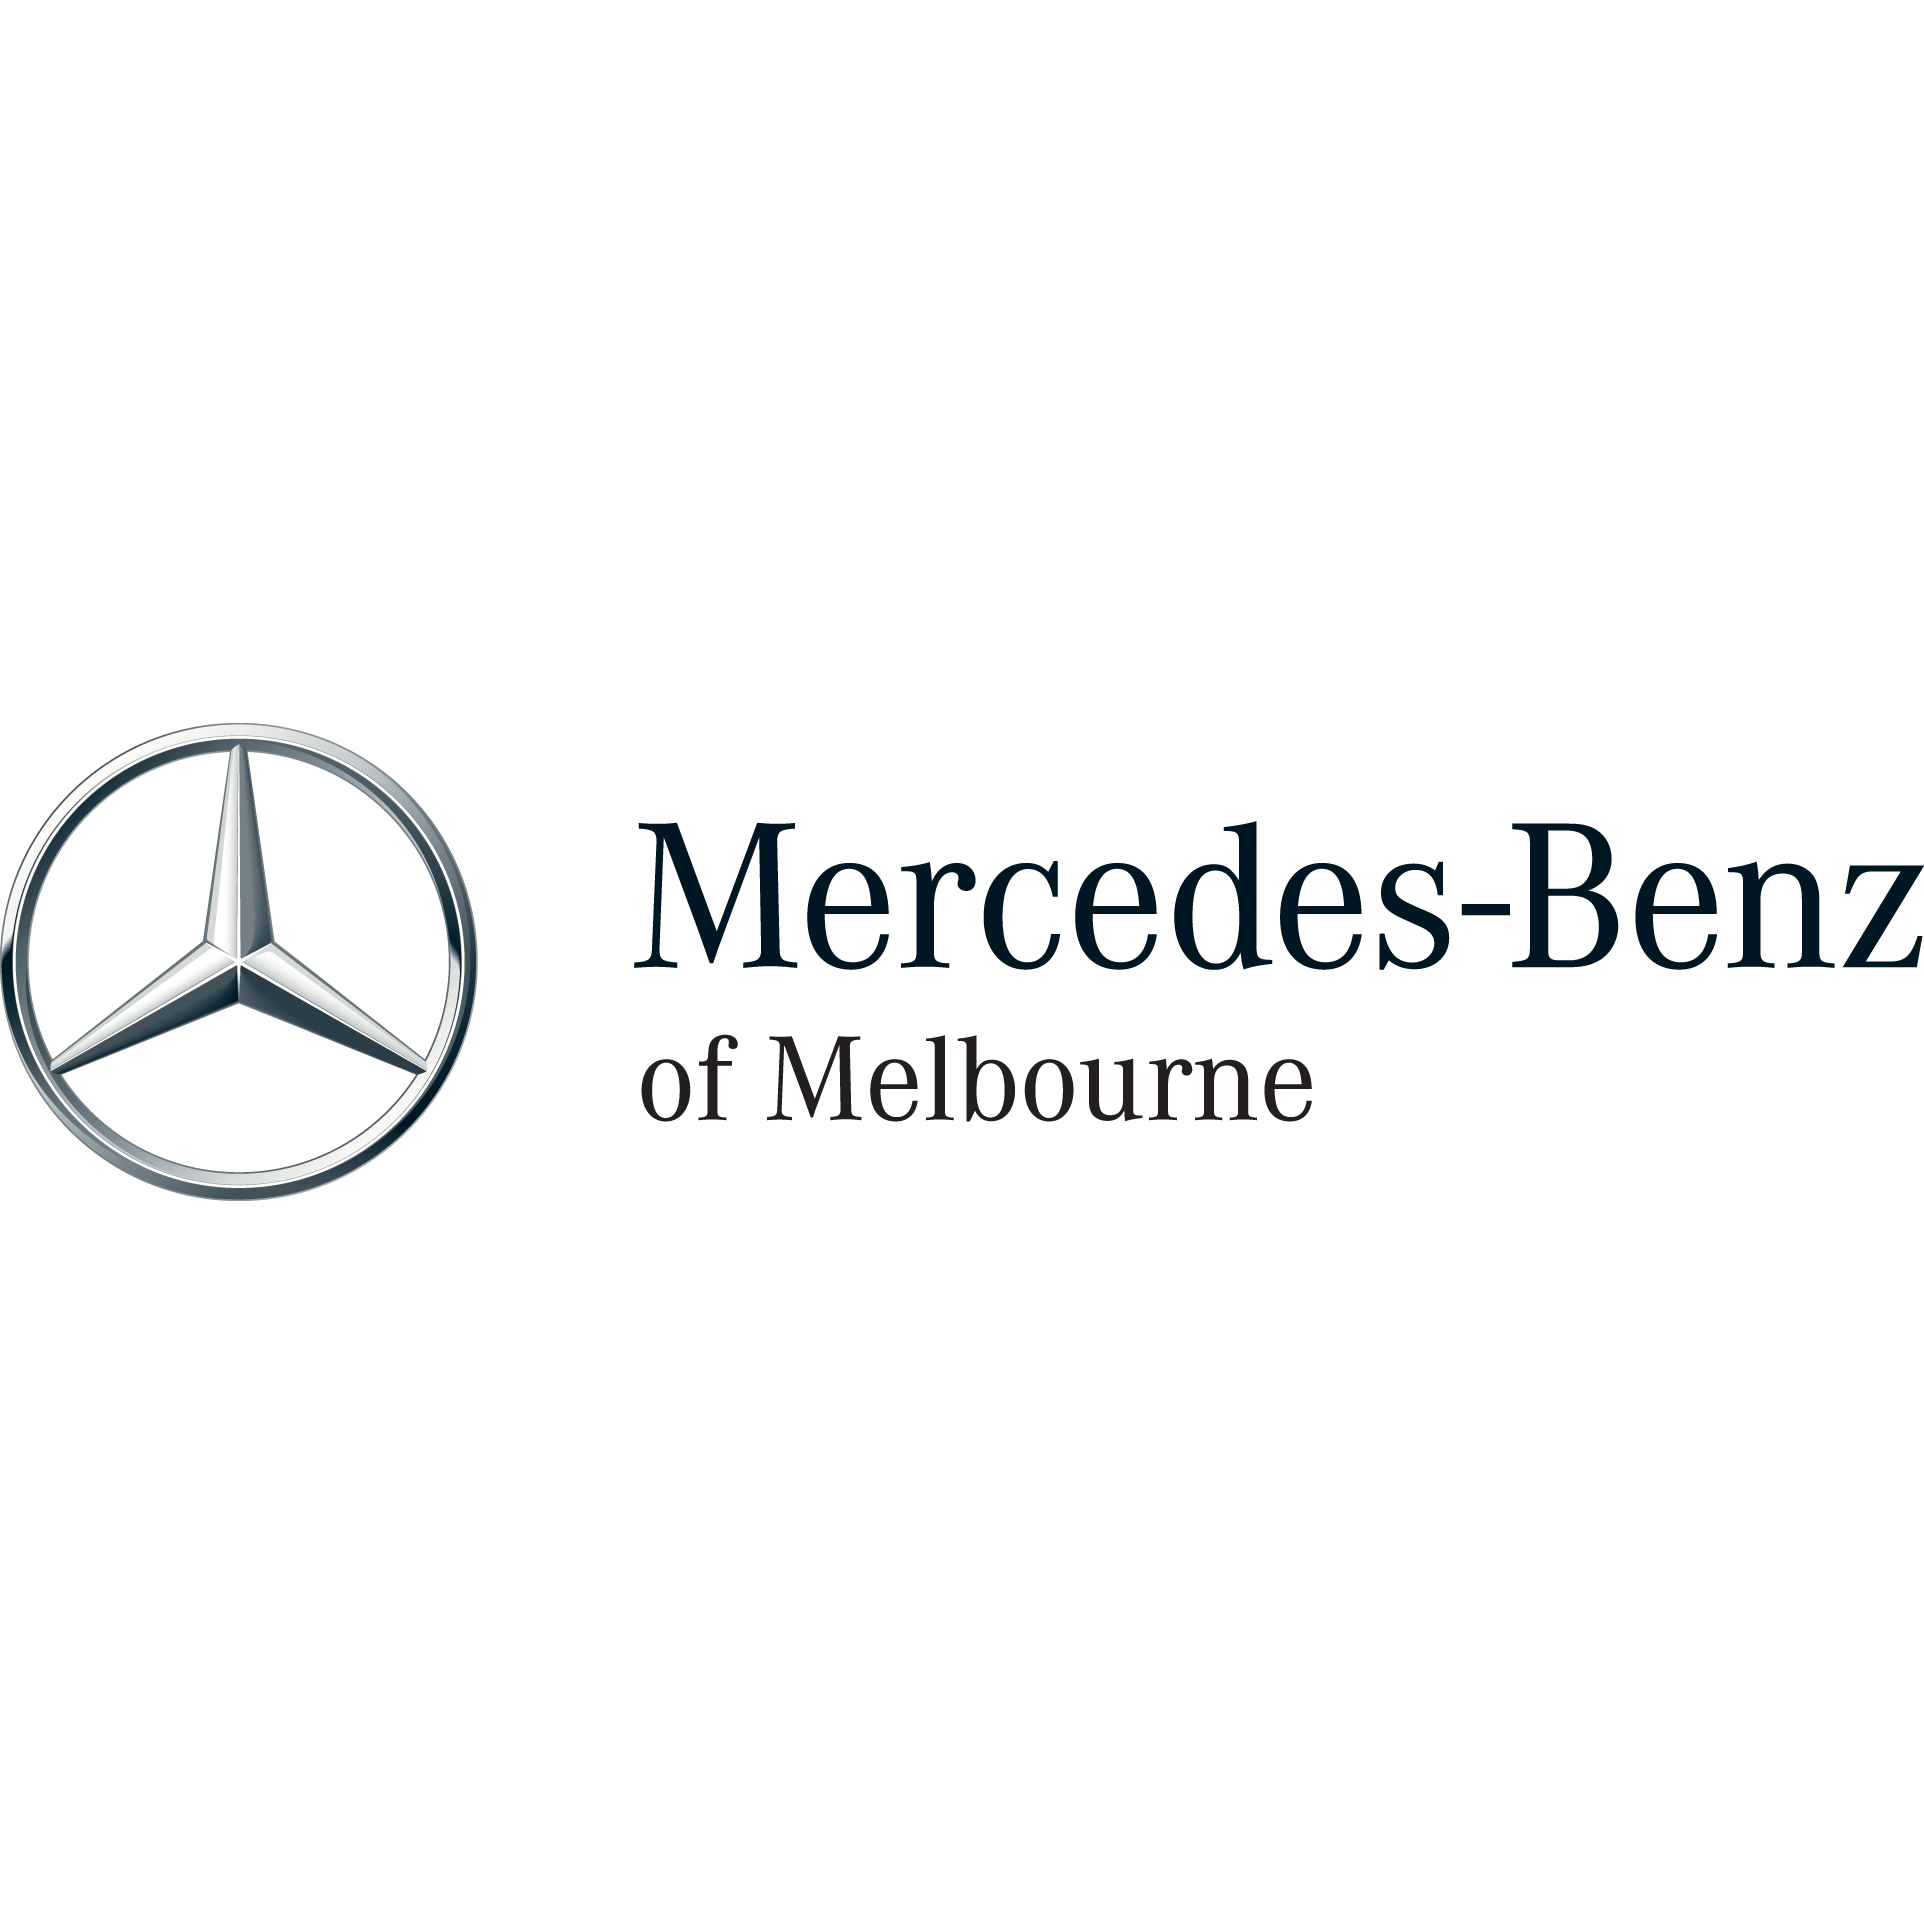 Mercedes-Benz of Melbourne